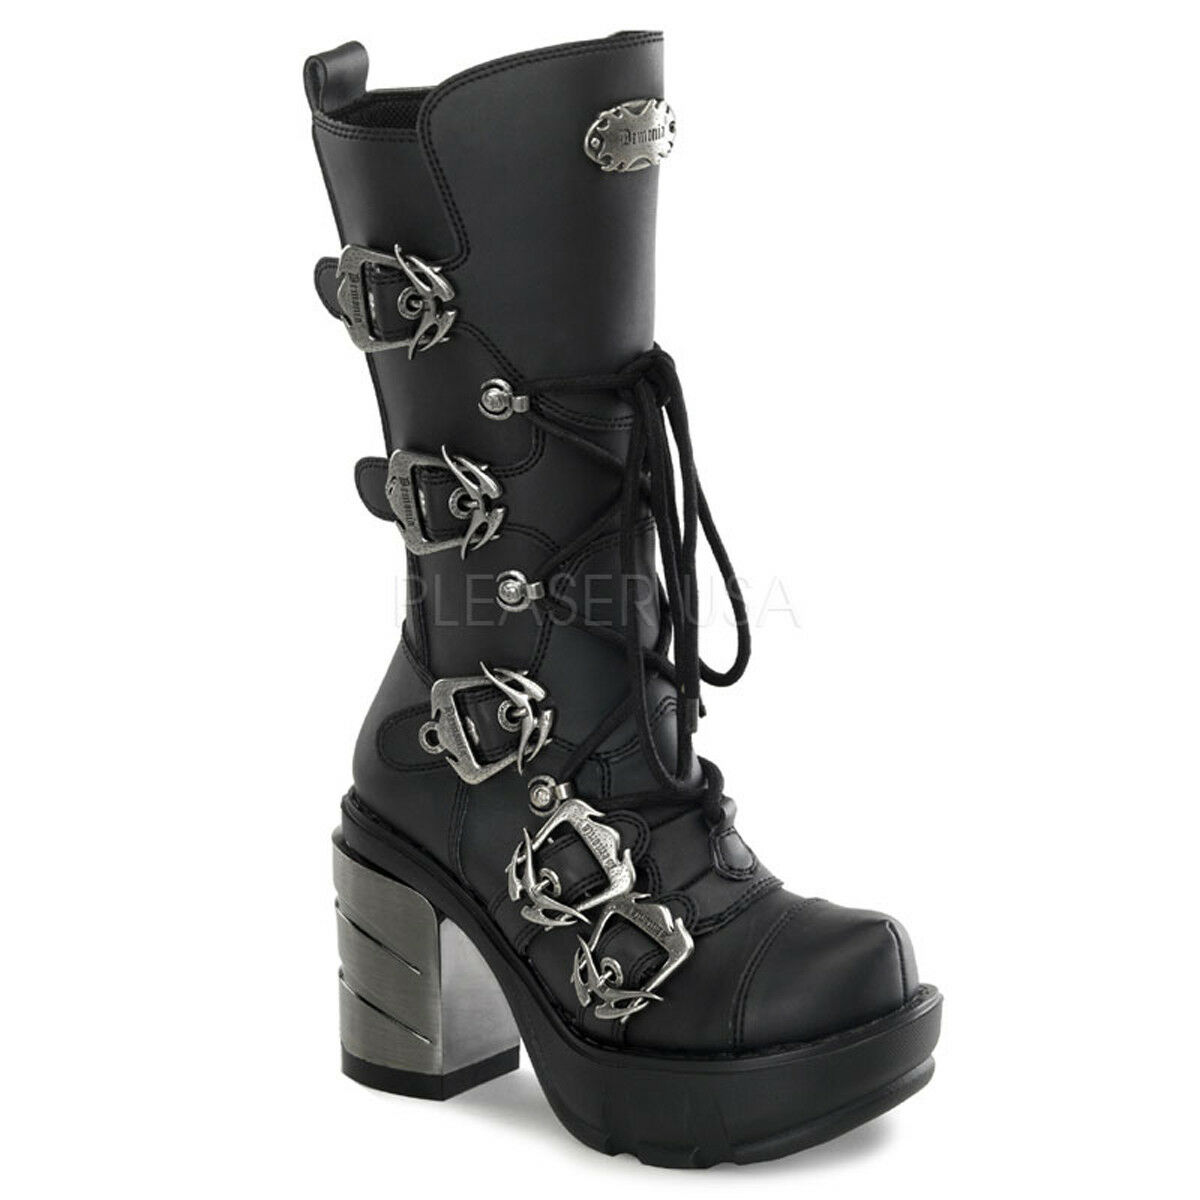 Demonia SINISTER-203 Womens Black Vegan Leather Chrome Molded Platform Knee Boot